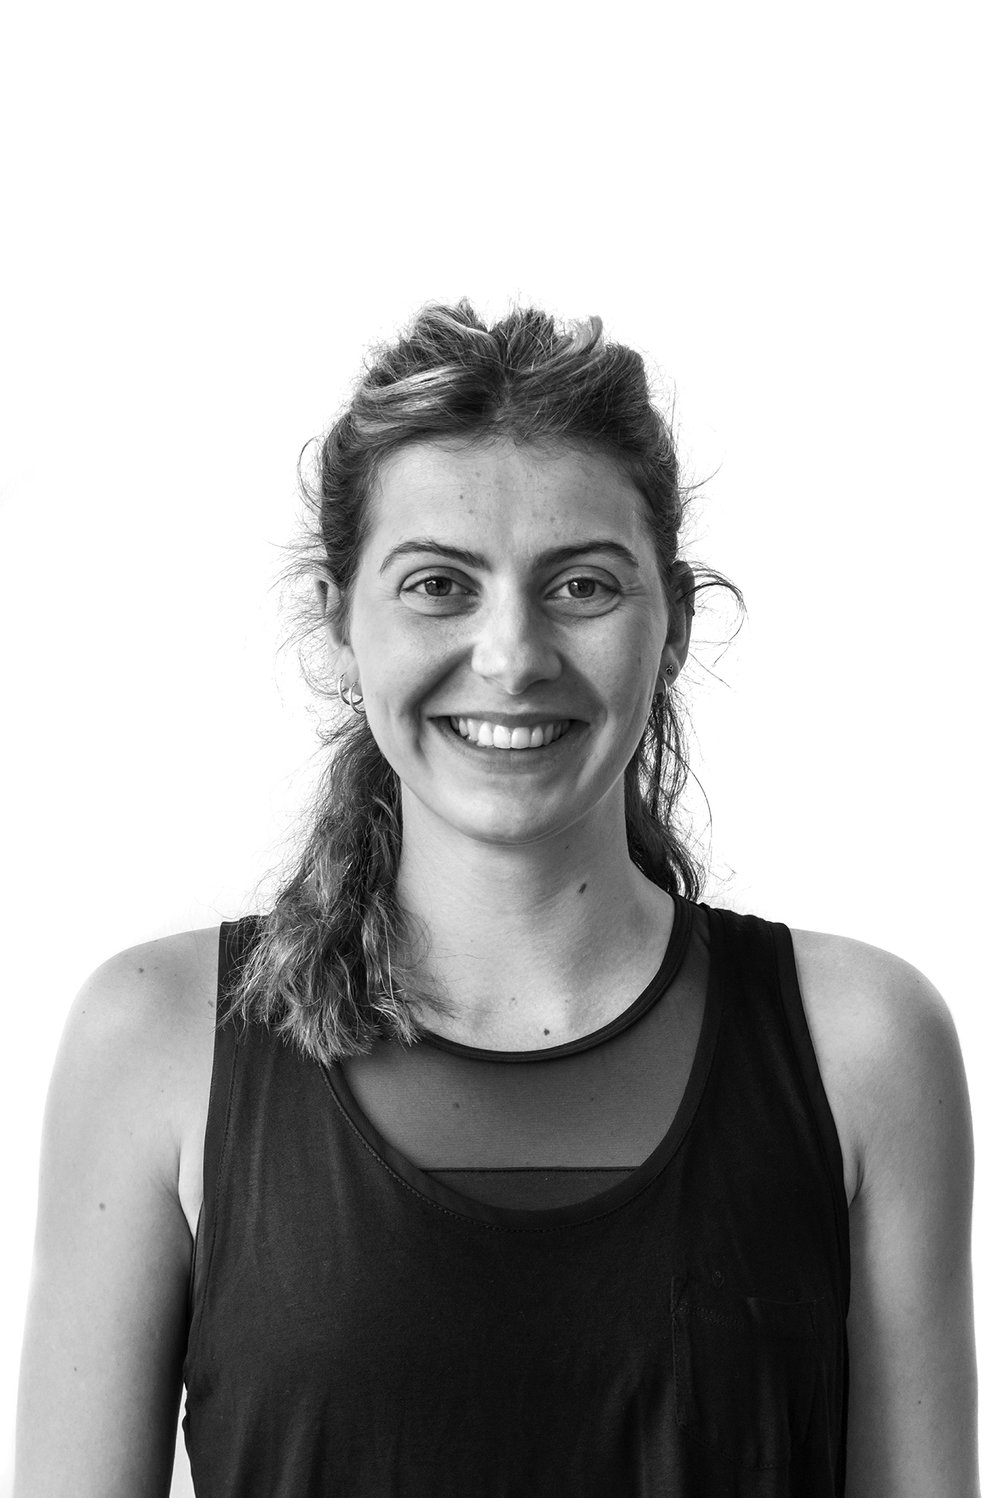 Ellis FitzherbertAdult Tap + Barre - Ellis began dance training aged 3, studying Ballet, Tap, Modern + Jazz . She has appeared in numerous professional productions including the UK tour of Evita, Spiller's Pantomimes (Junior and Senior dancer), Paper Moon Company (Music Hall at Leicester Square Theatre and Trafalgar Square), Kingston International Youth Arts Festival and the 100th anniversary gala performance of Wimbledon Theatre.Ellis has been an assistant dance teacher since the age of 15, embarking on her official qualifications in 2014. She has now achieved her ISTD Diploma in Dance Education in both Modern and Tap; the latter being her passion.Missing the discipline of Ballet, in 2017 Ellis added Barre teaching to her repertoire and loves combining adult classes with her timetable of children's classes. She especially loves teaching both parents and children tap so they can practise at home together!QUALIFICATIONS: ISTD Diploma in Dance Education (Modern + Tap) | BarreConcept Teacher Training (REP accredited) |